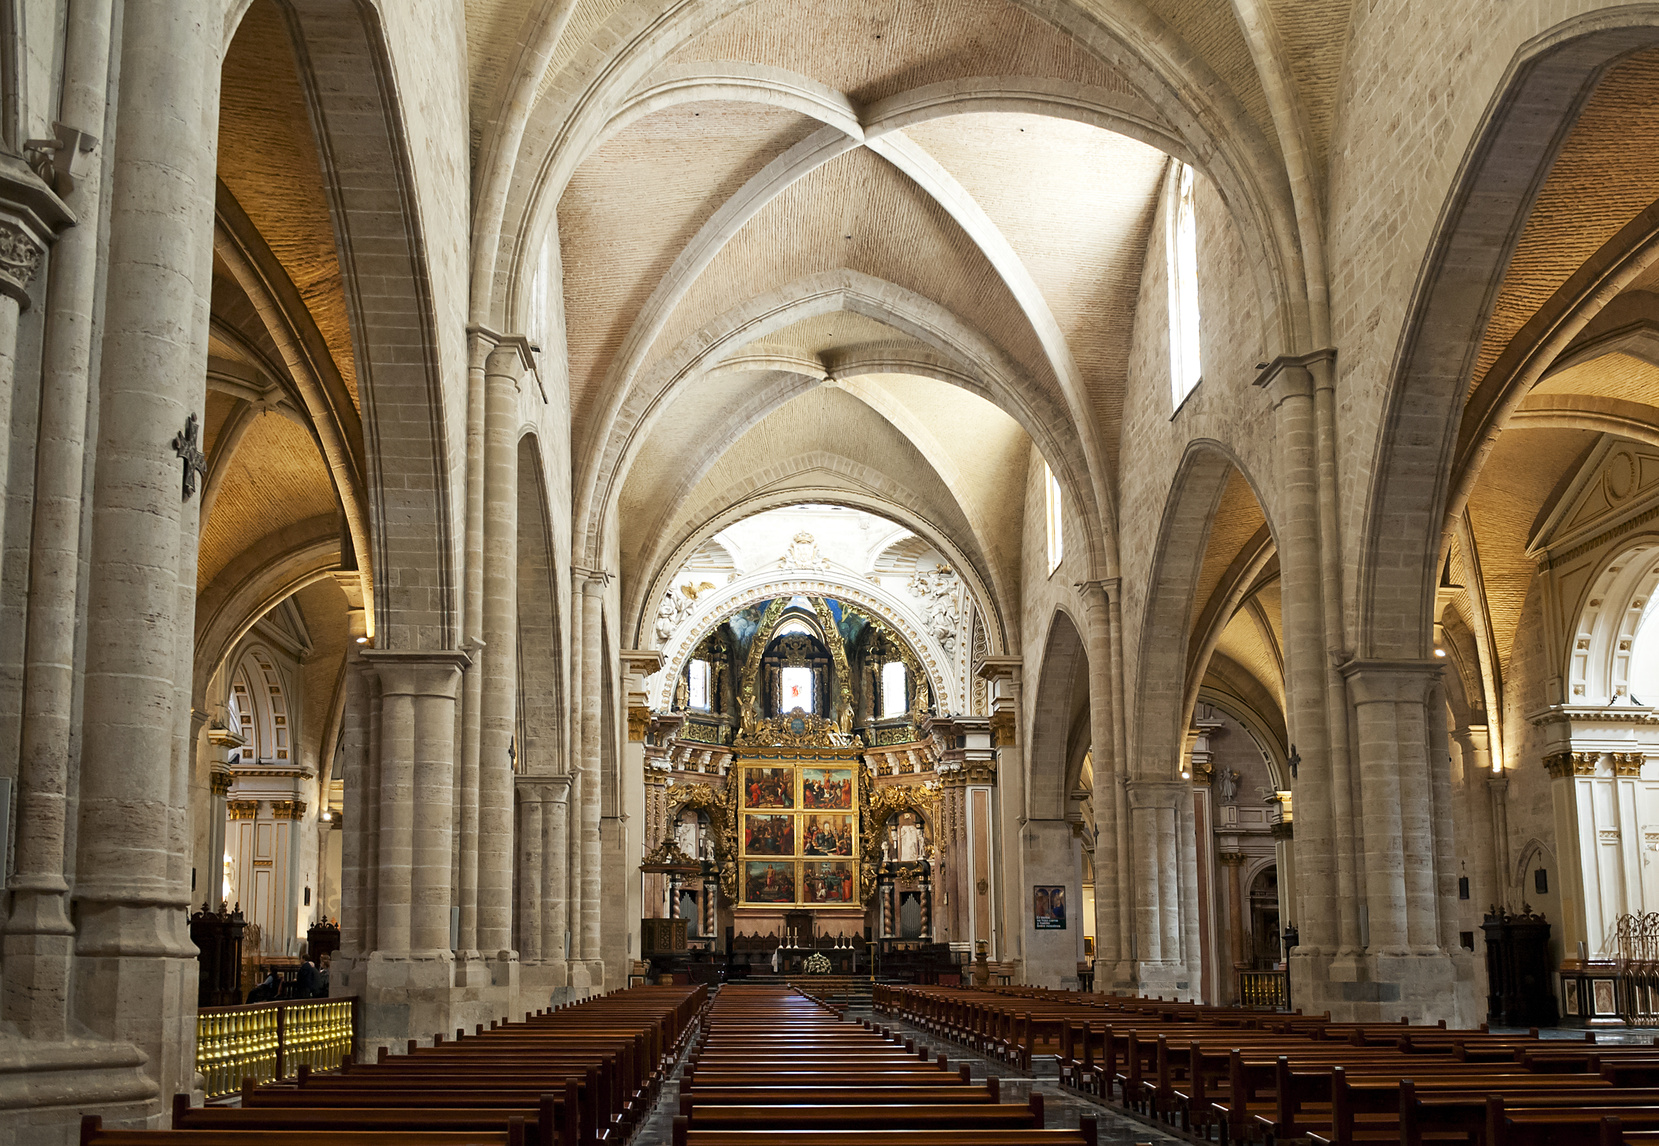 Nave view inside Valencia Cathedral, Spain